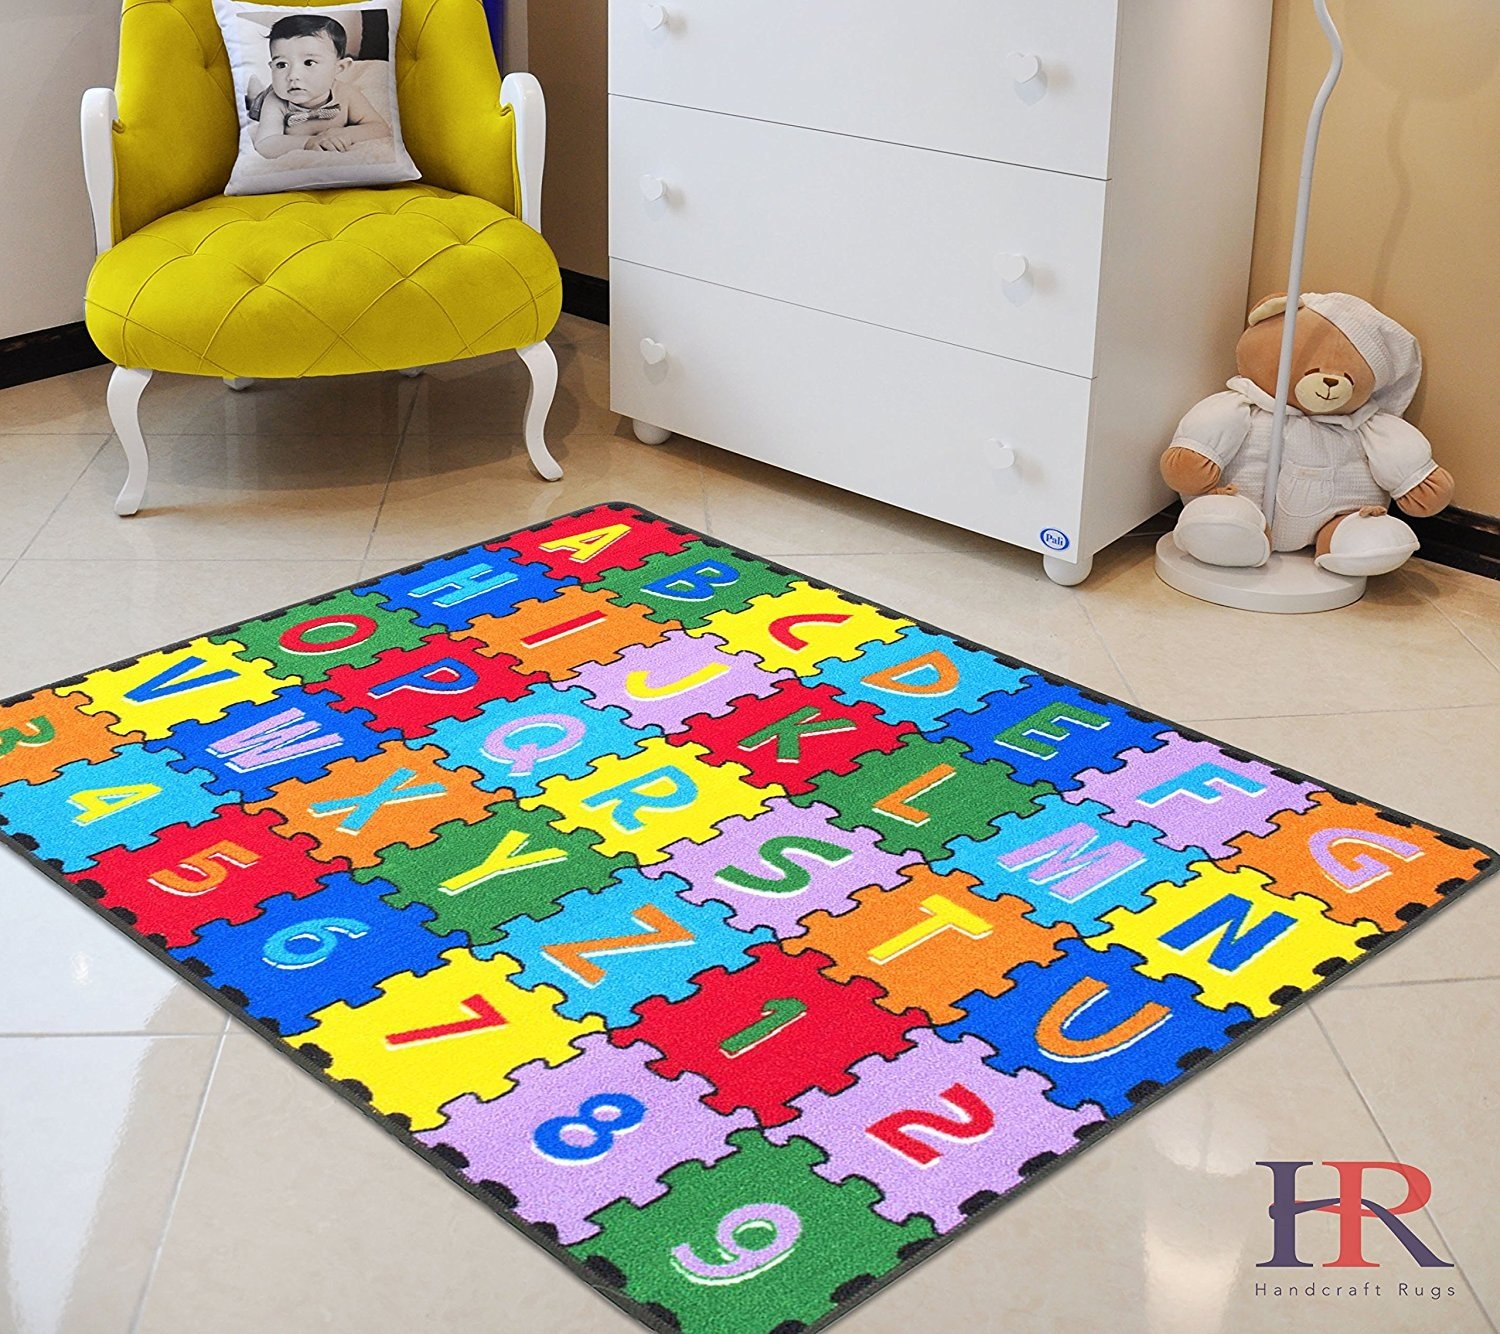 Rugs For Kids Handcraft Rugs Kids Rugs Driving Skills Play Time Street Map Rubber Back Non Slip Ideal For Classroom Kids Room